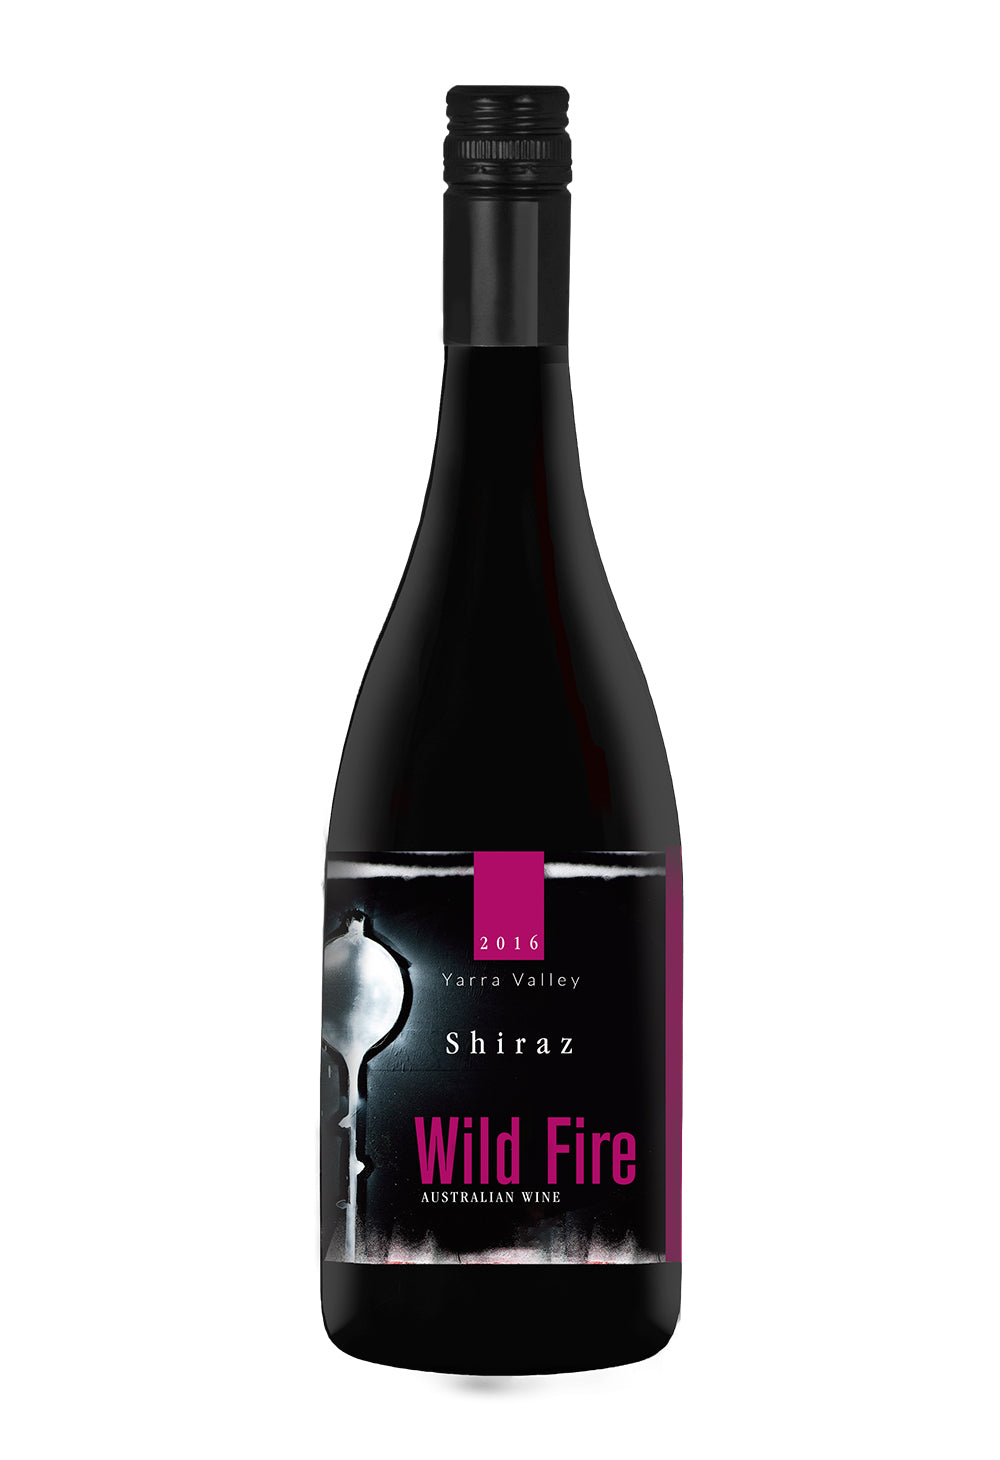 Wild Fire Yarra Valley Shiraz 2016